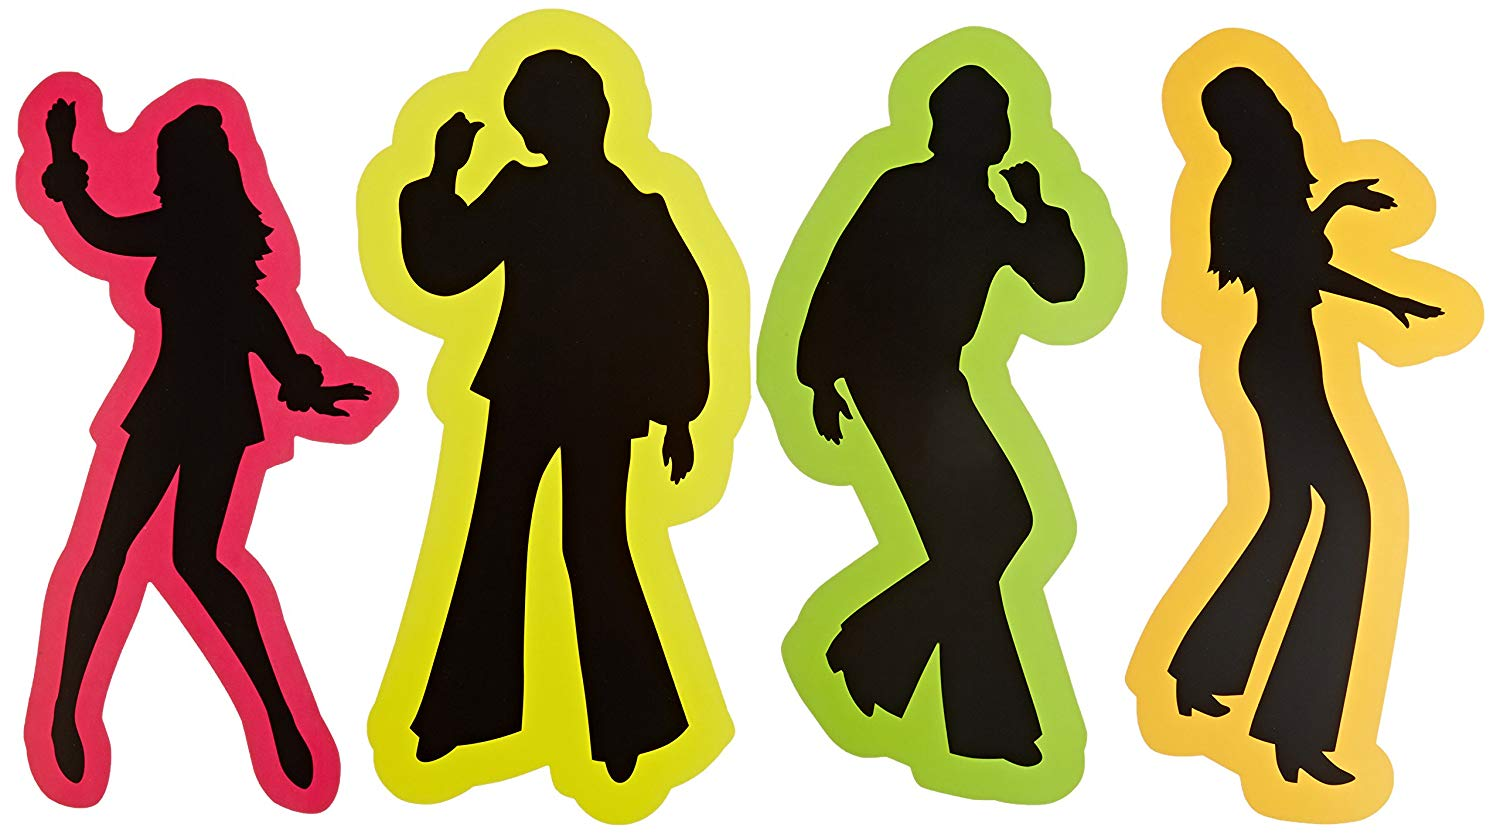 70s disco silhouette clipart image library Retro 70\'s Silhouettes Party Accessory (1 count) (4/Pkg) image library